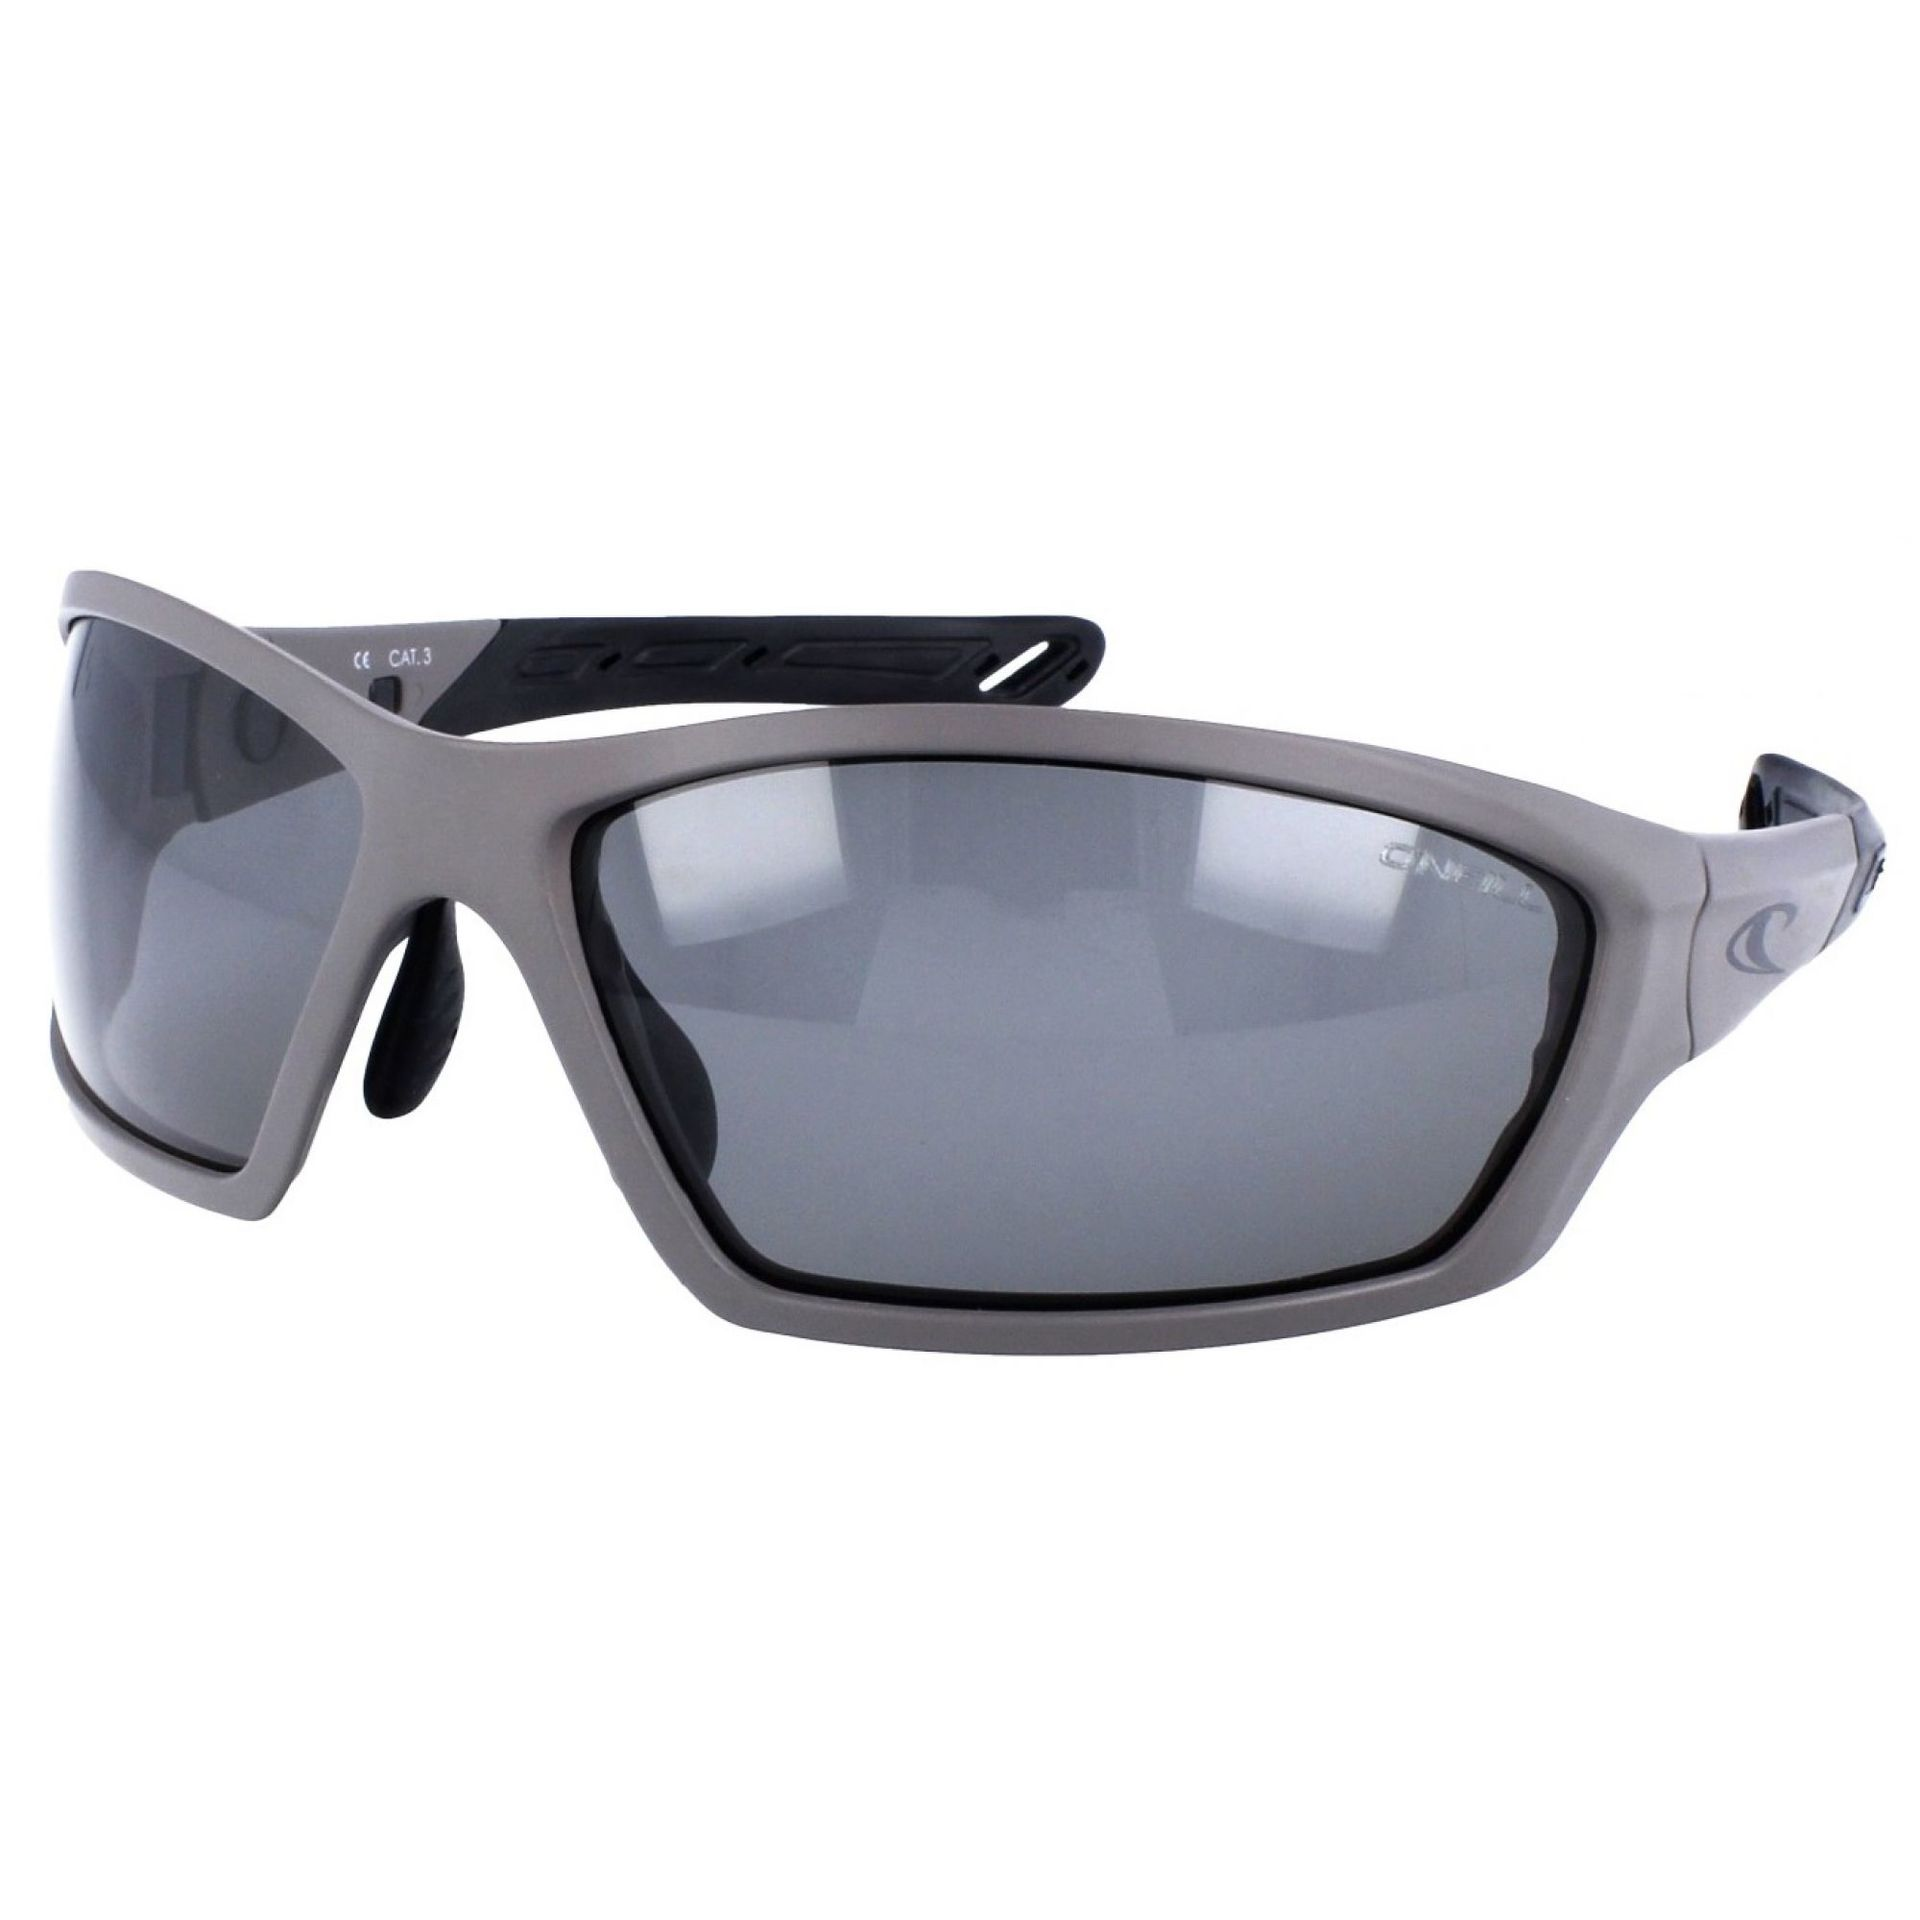 OKULARY ONEILL LIGHT 108P